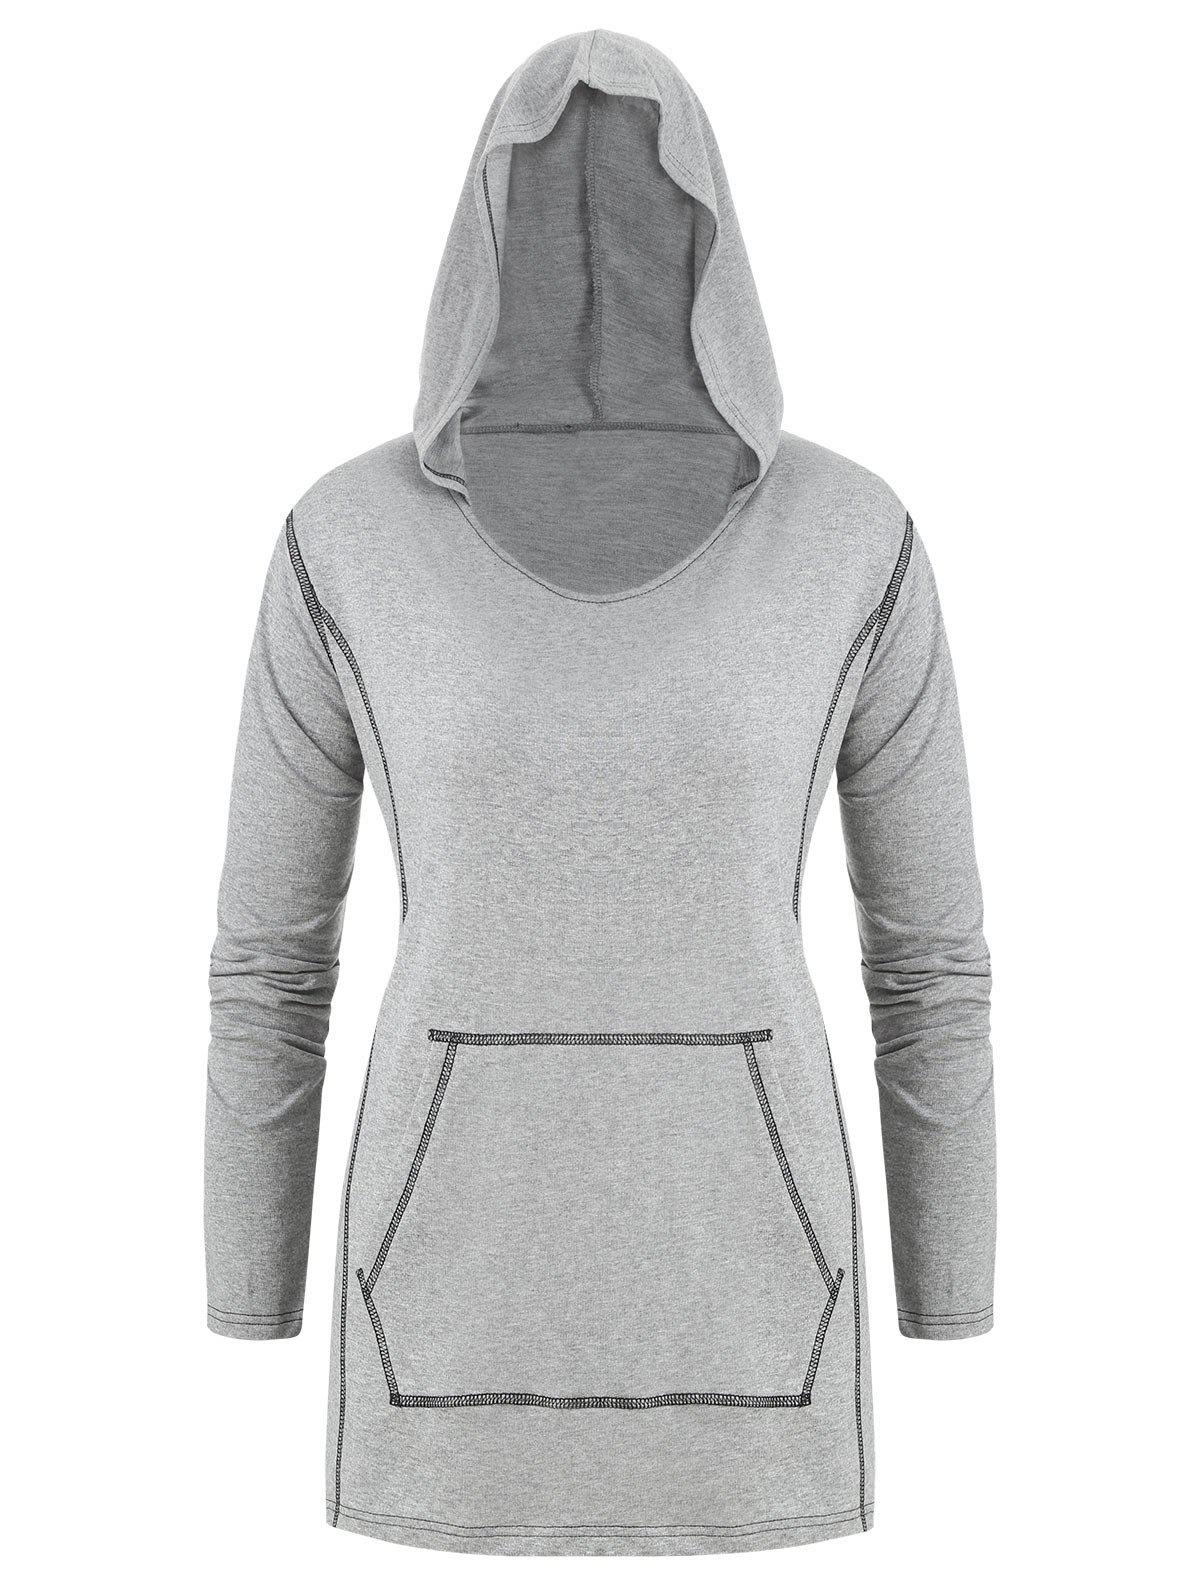 Plus Size Stitching Front Pocket Hoodie - GRAY L